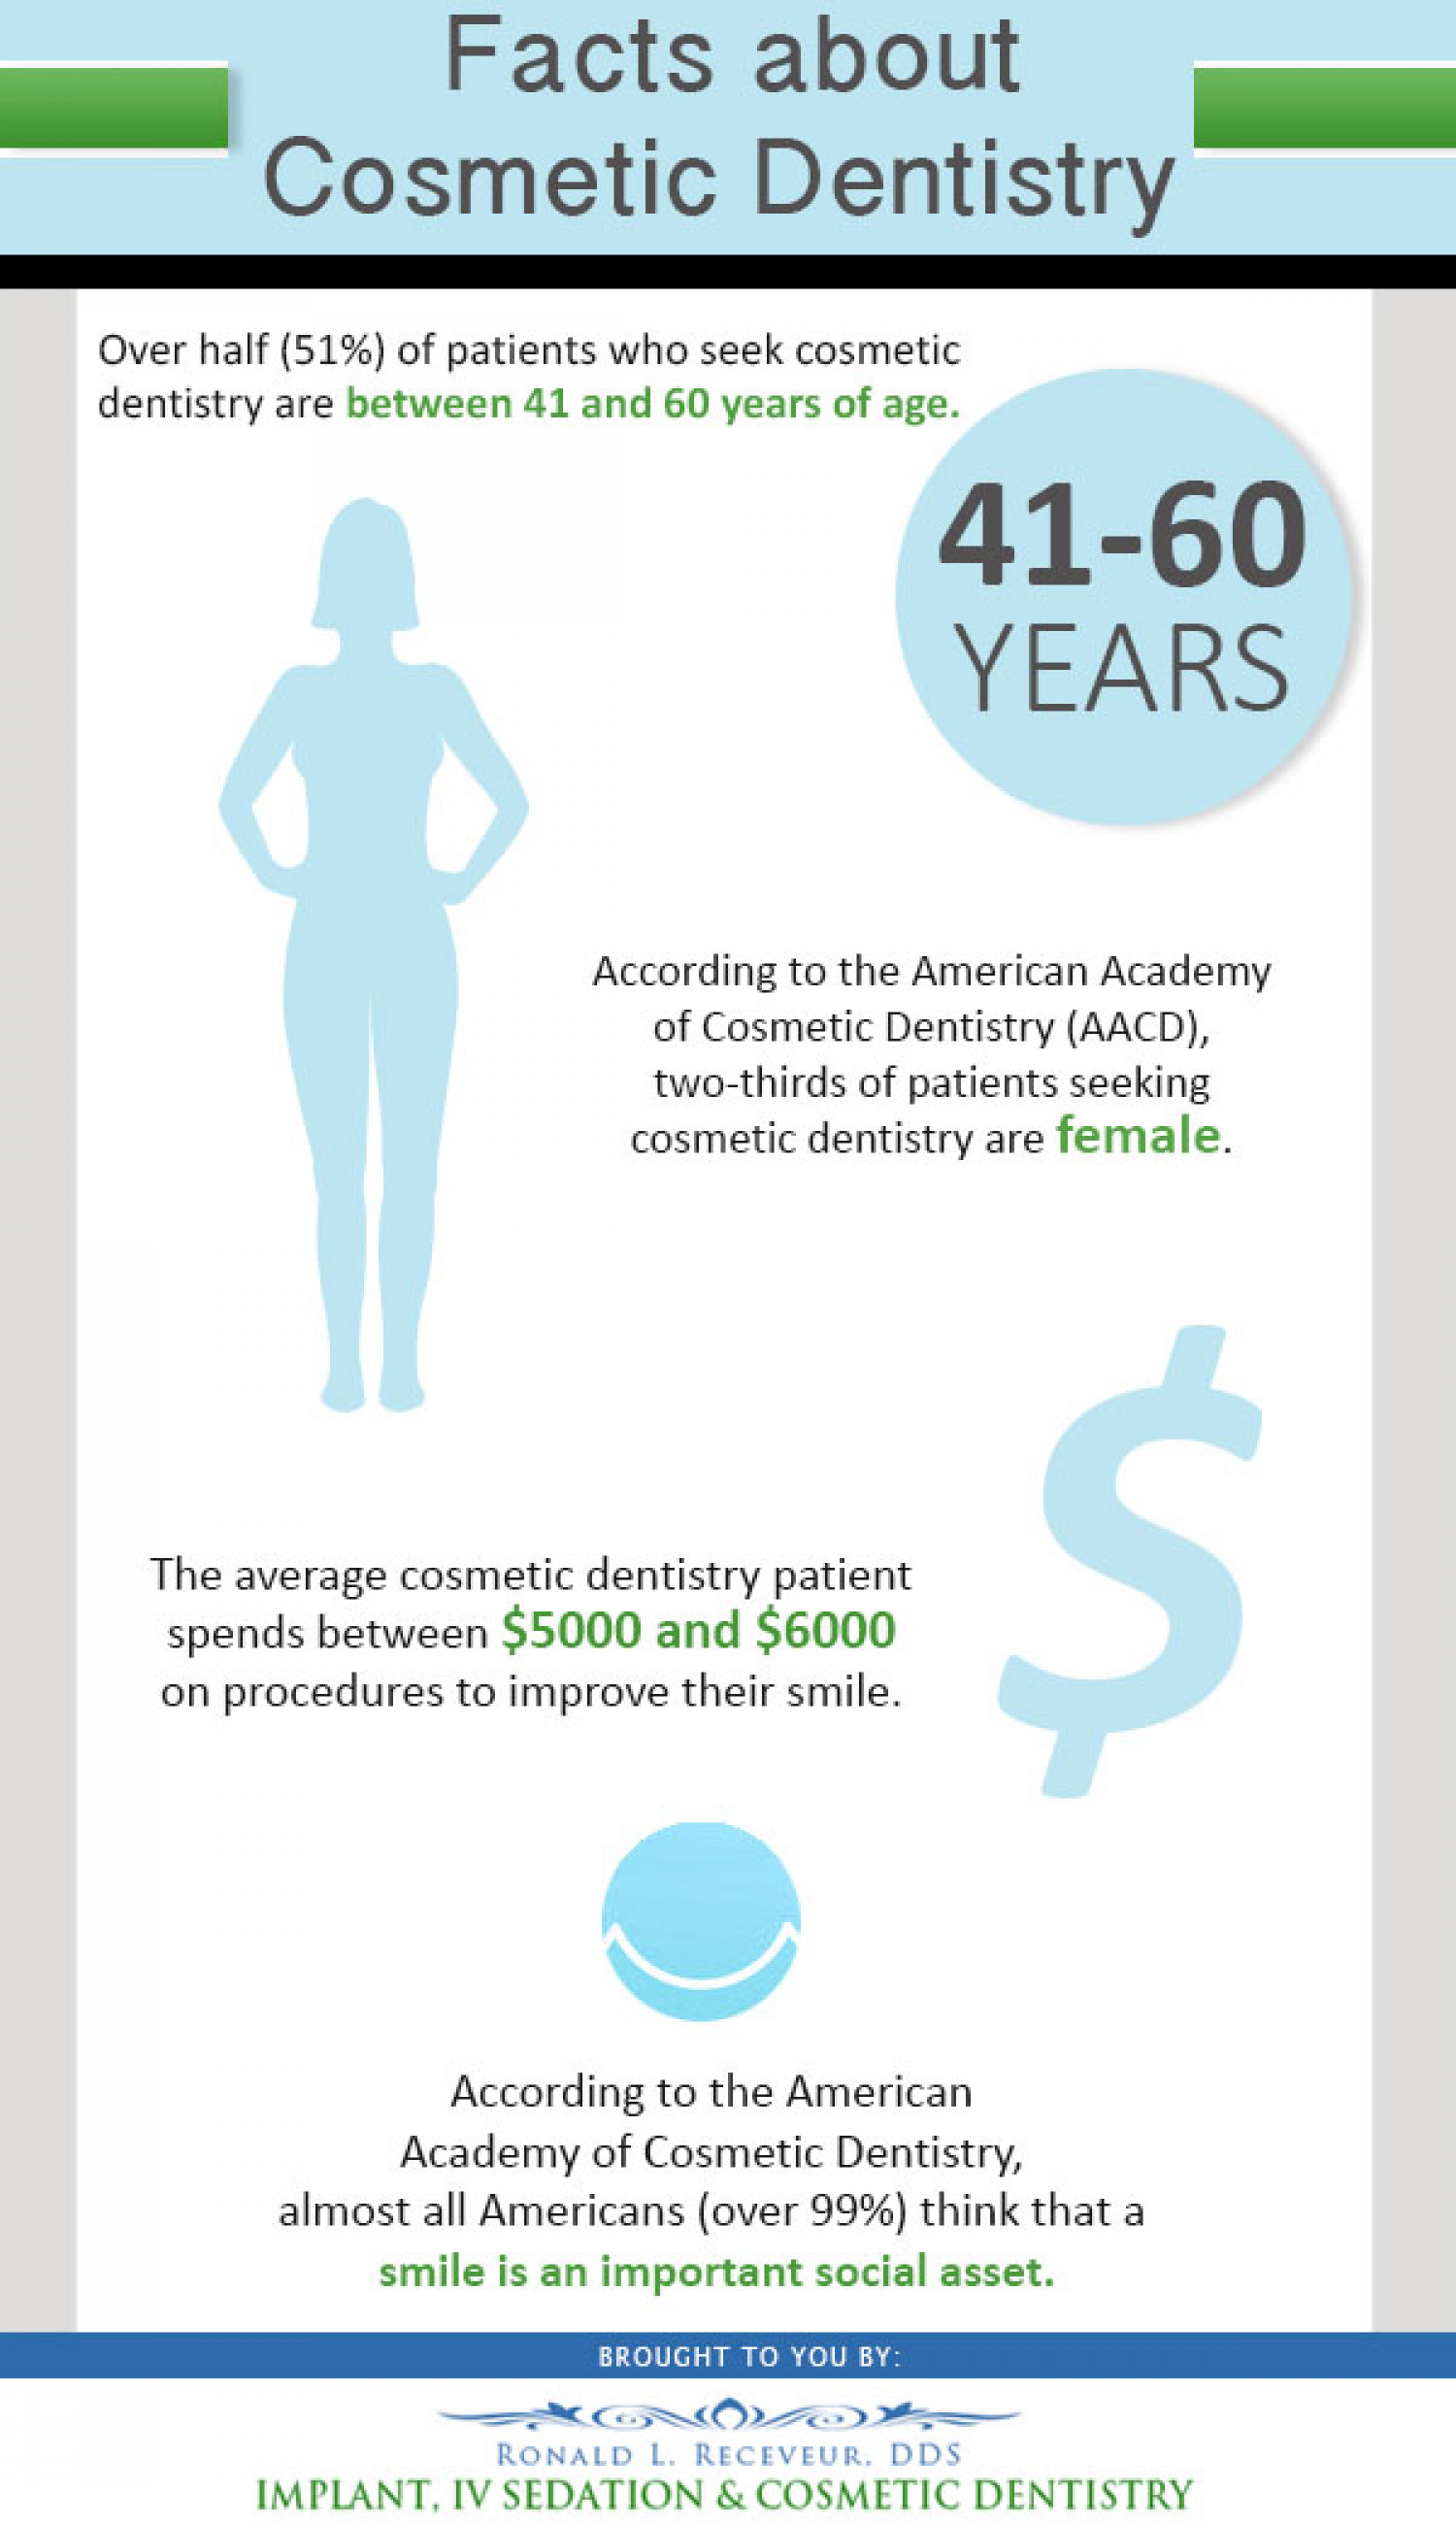 Facts About Cosmetic Dentistry Infographic